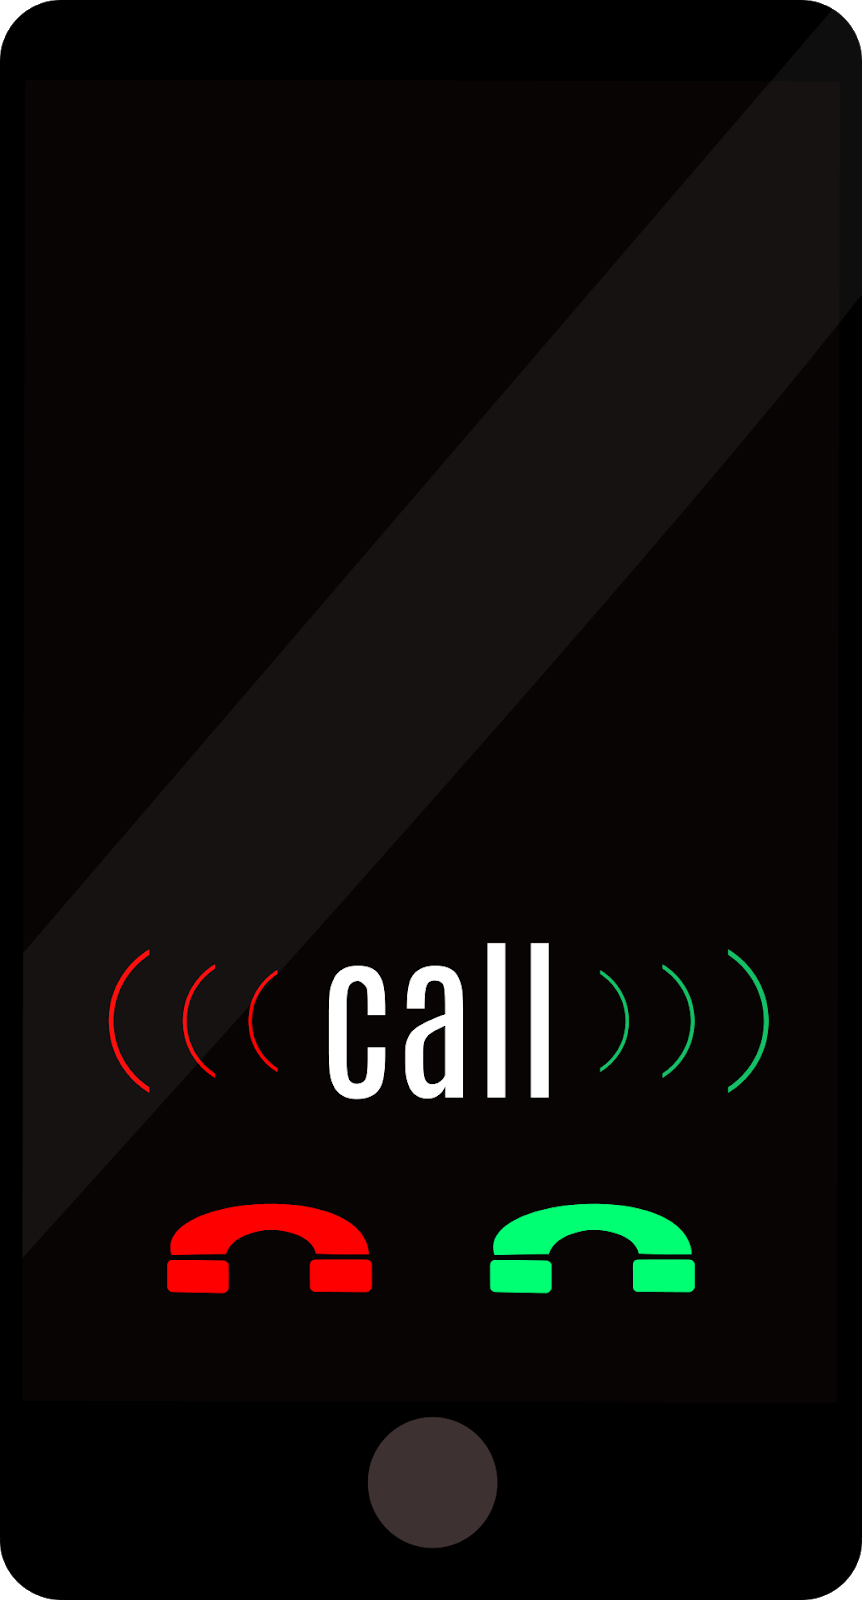 Download free illustrations of smartphone, call, phone